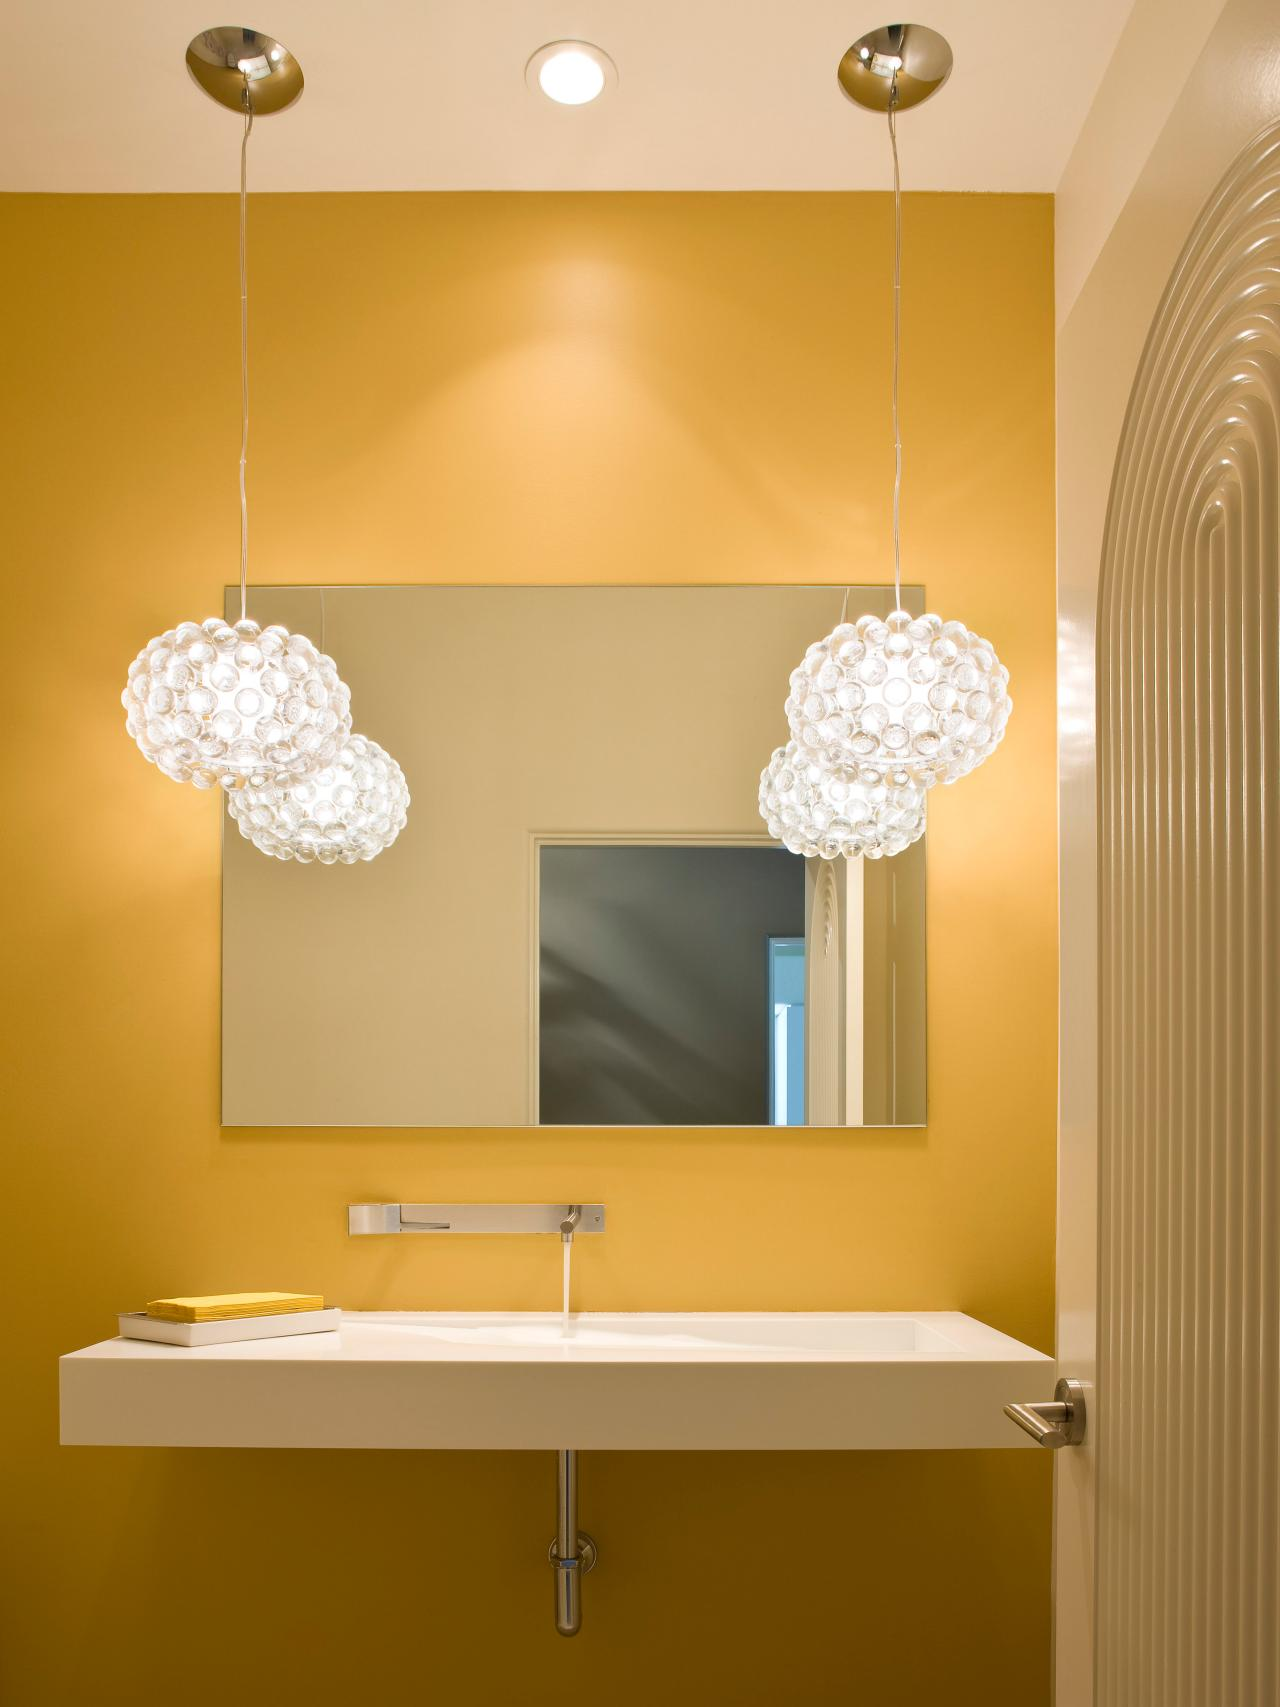 Eye Catching Lighting. Sleek Yellow Bathroom